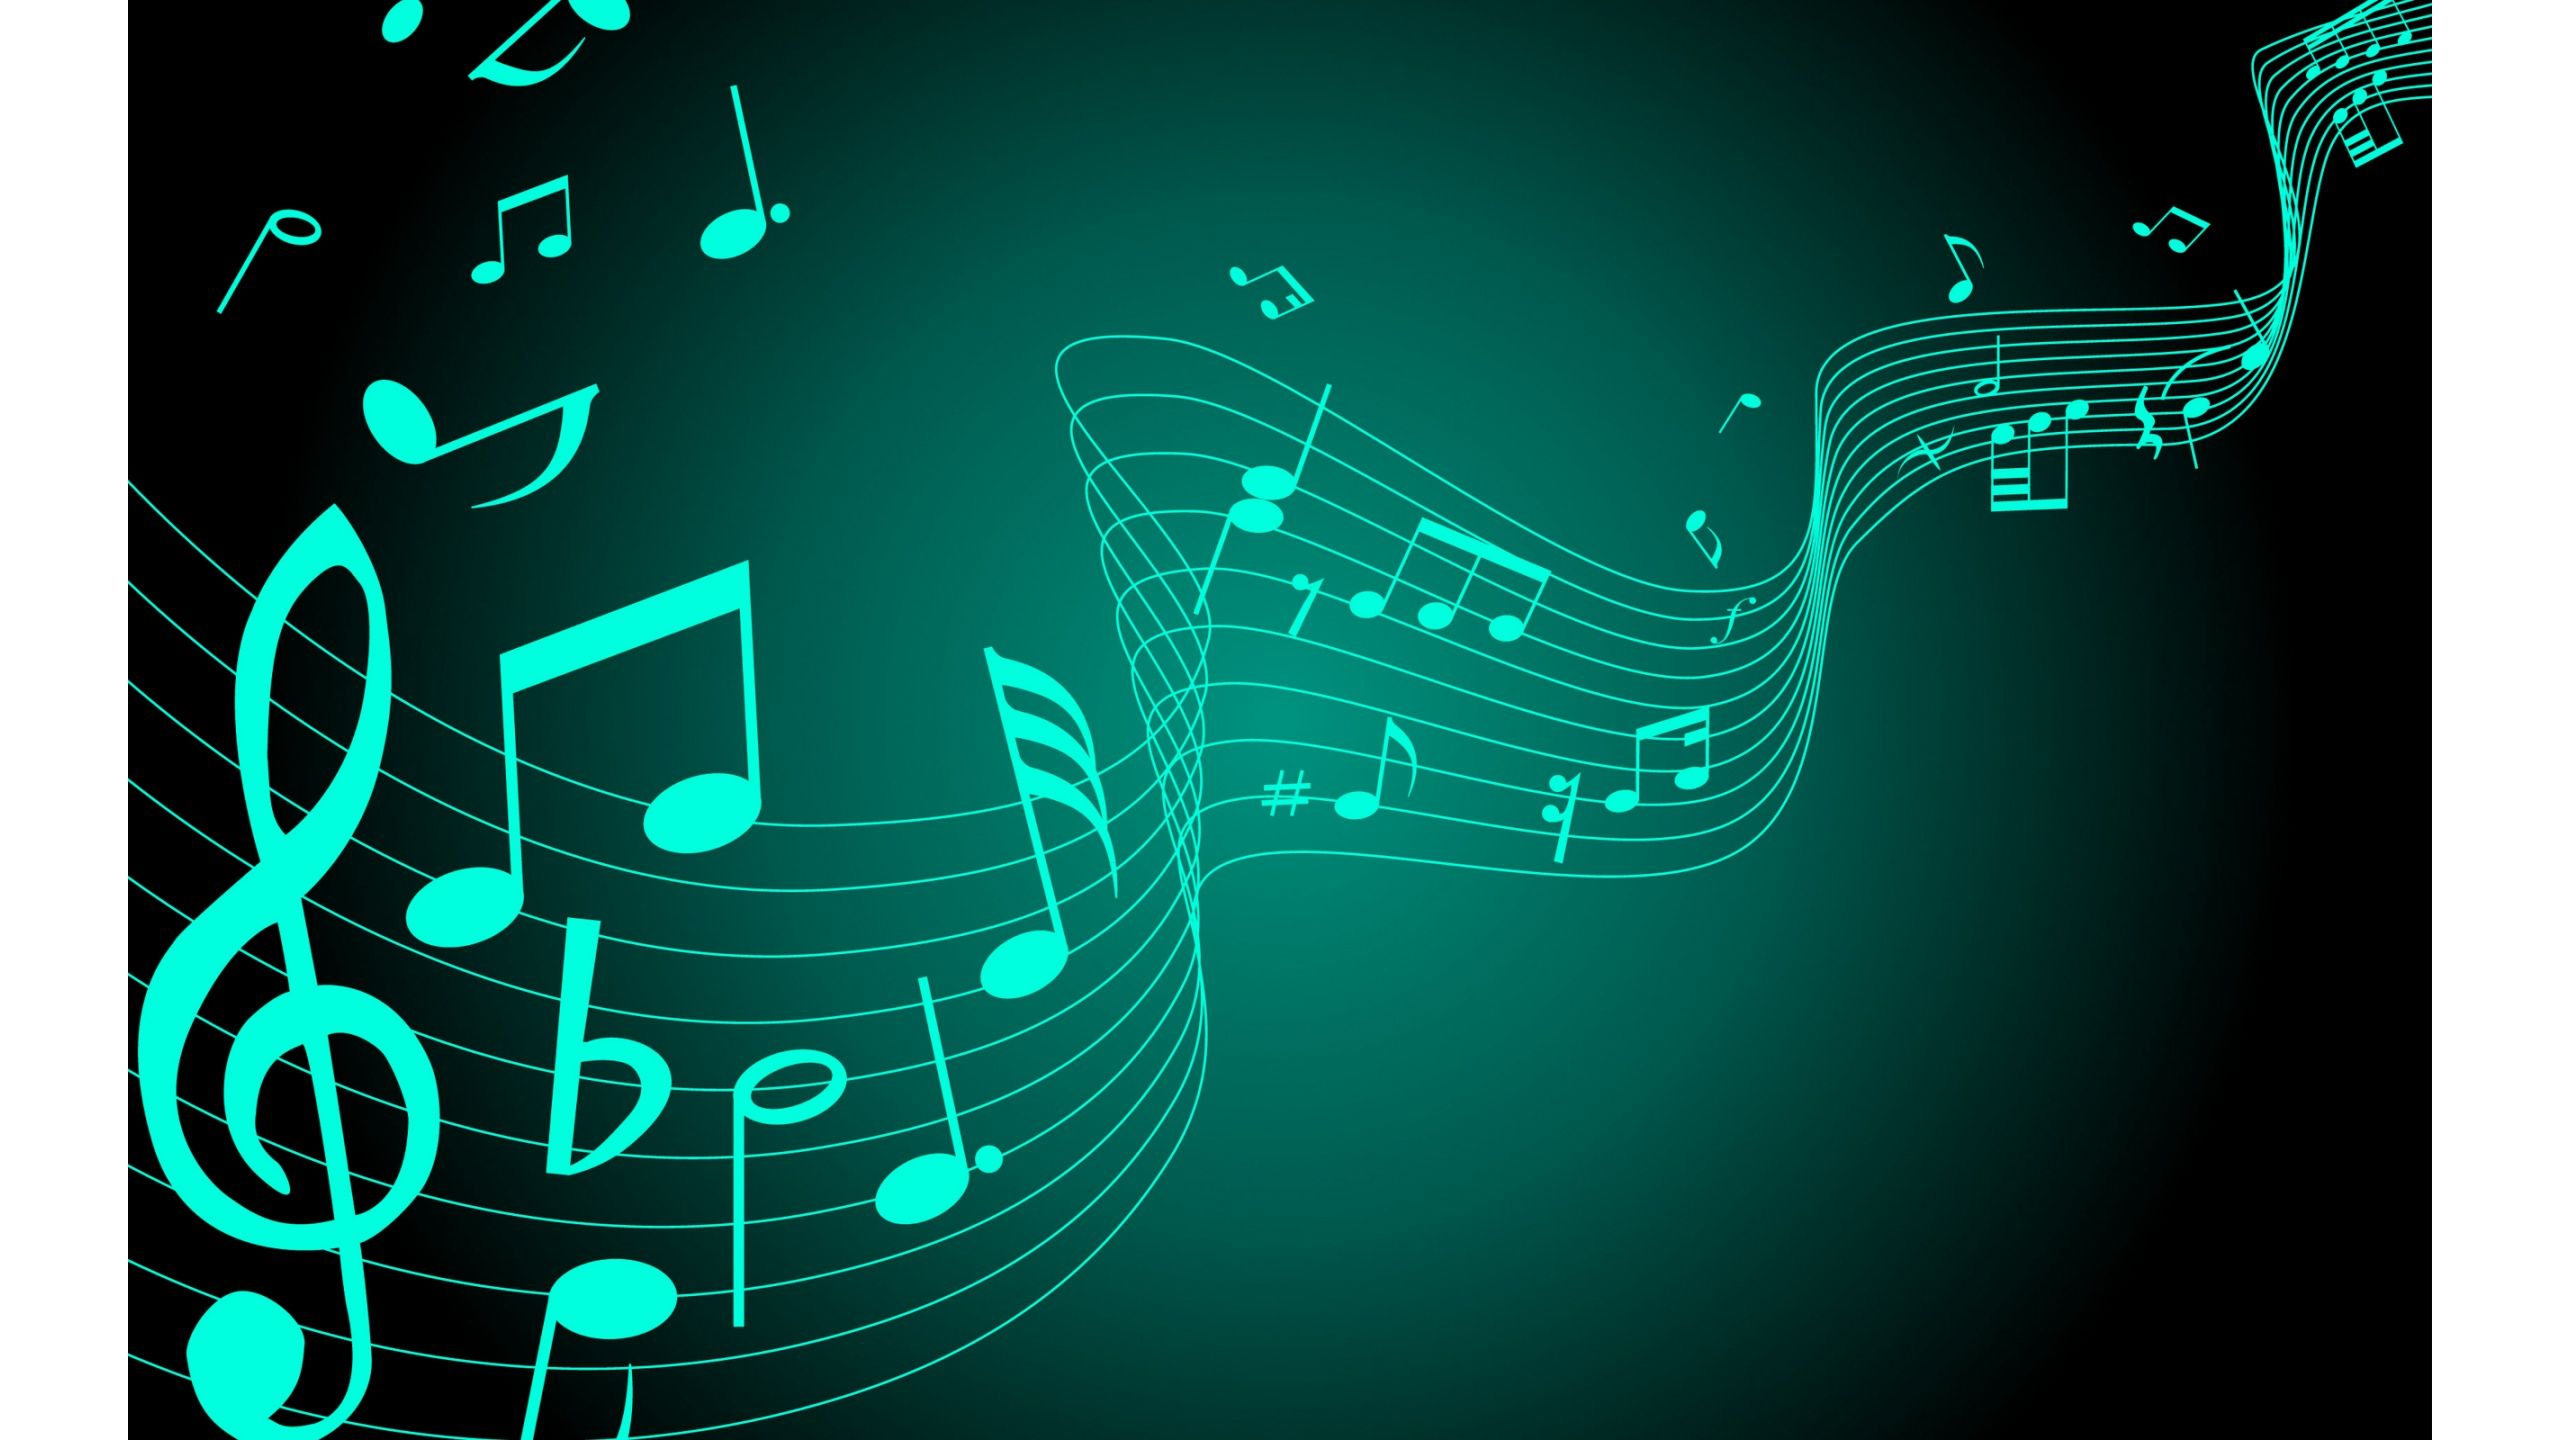 2560x1440 Wallpaper Music Wallpaper Music Wallpaper Music Notes Choral Music